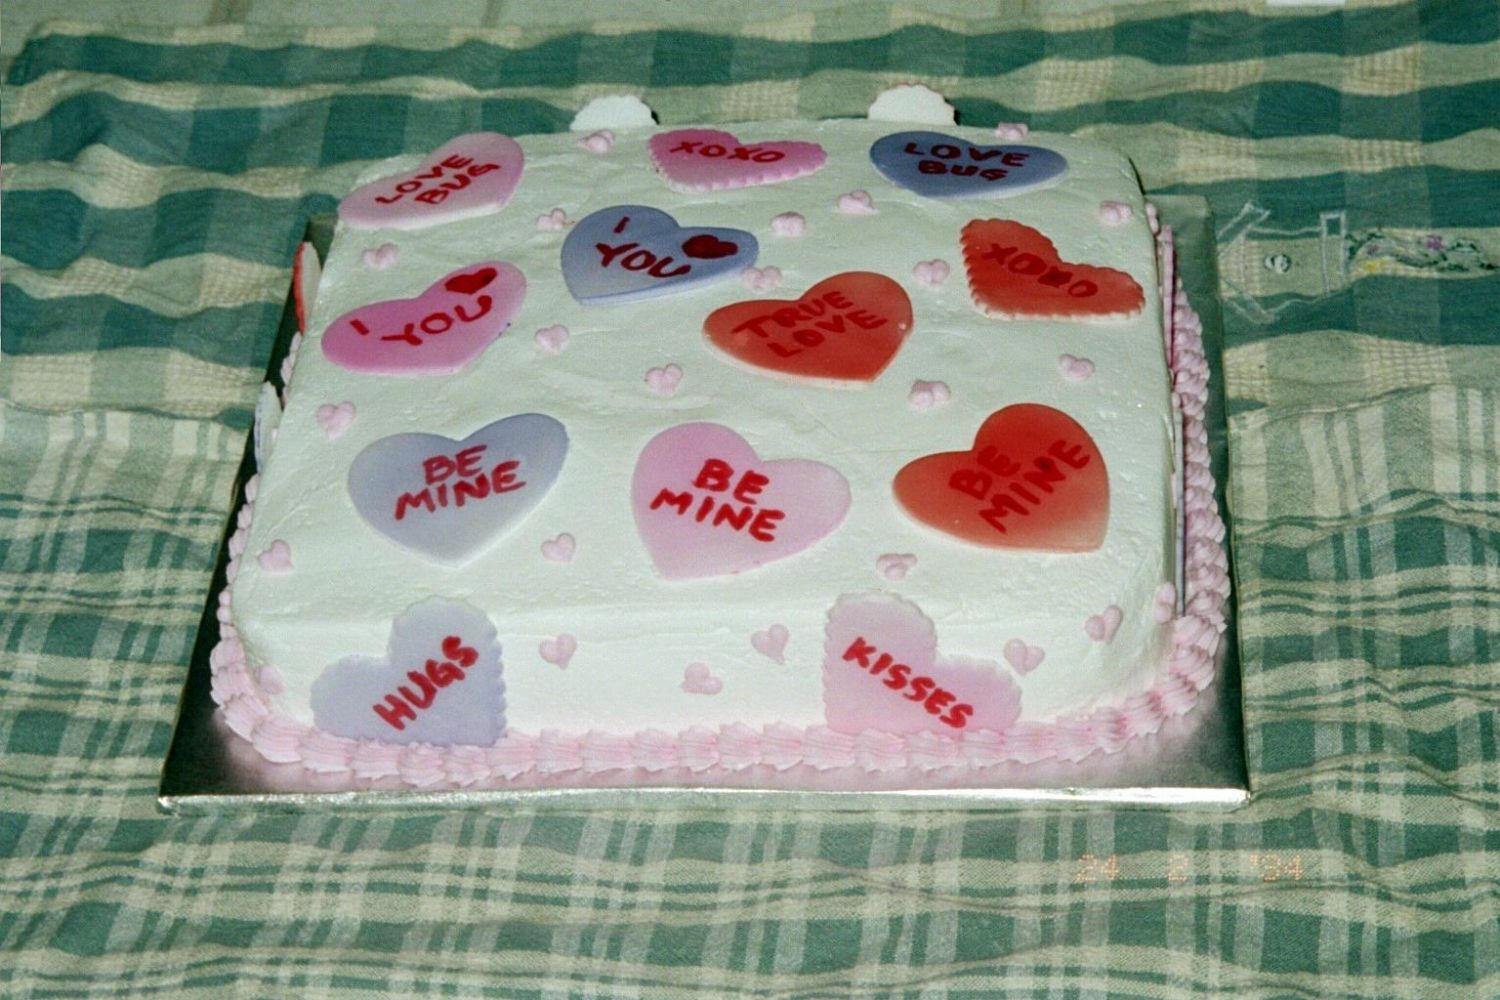 Hearts Cake Just fondant hearts with the message heart sayings written on them. Made it for a bake sale at work.